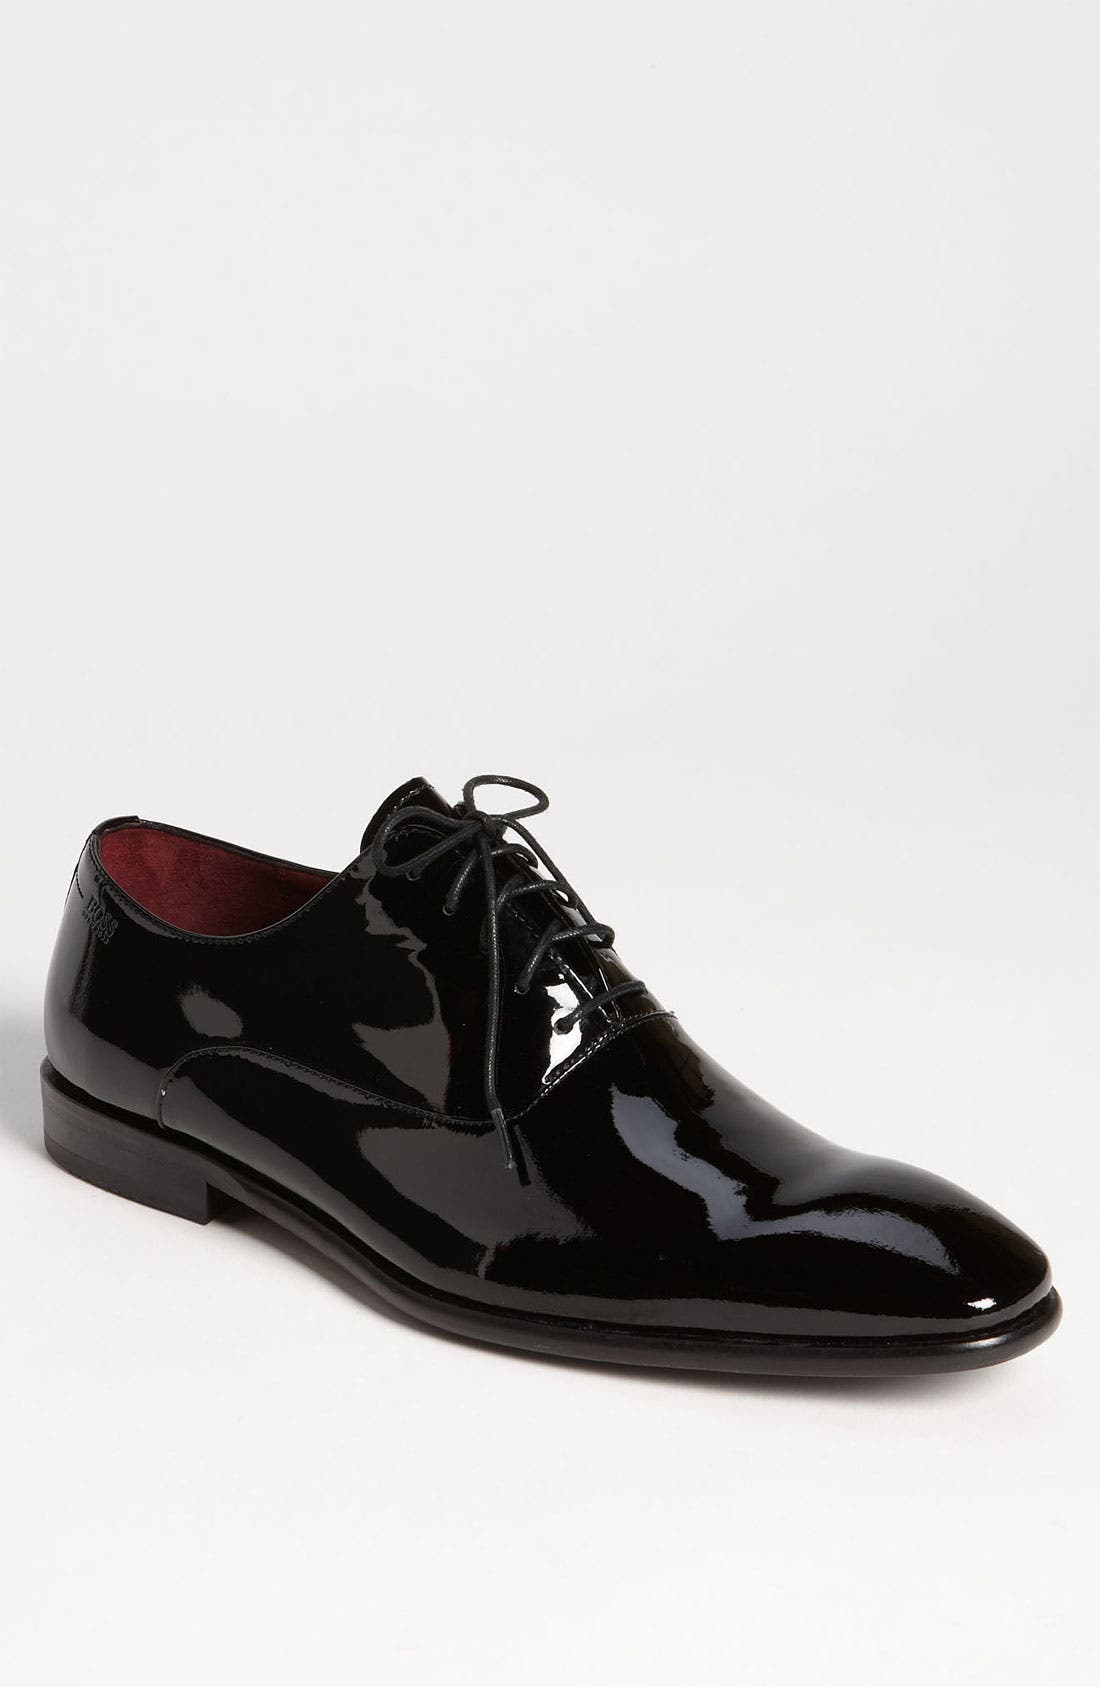 Alternate Image 1 Selected - BOSS 'Mellio' Plain Toe Oxford (Men)